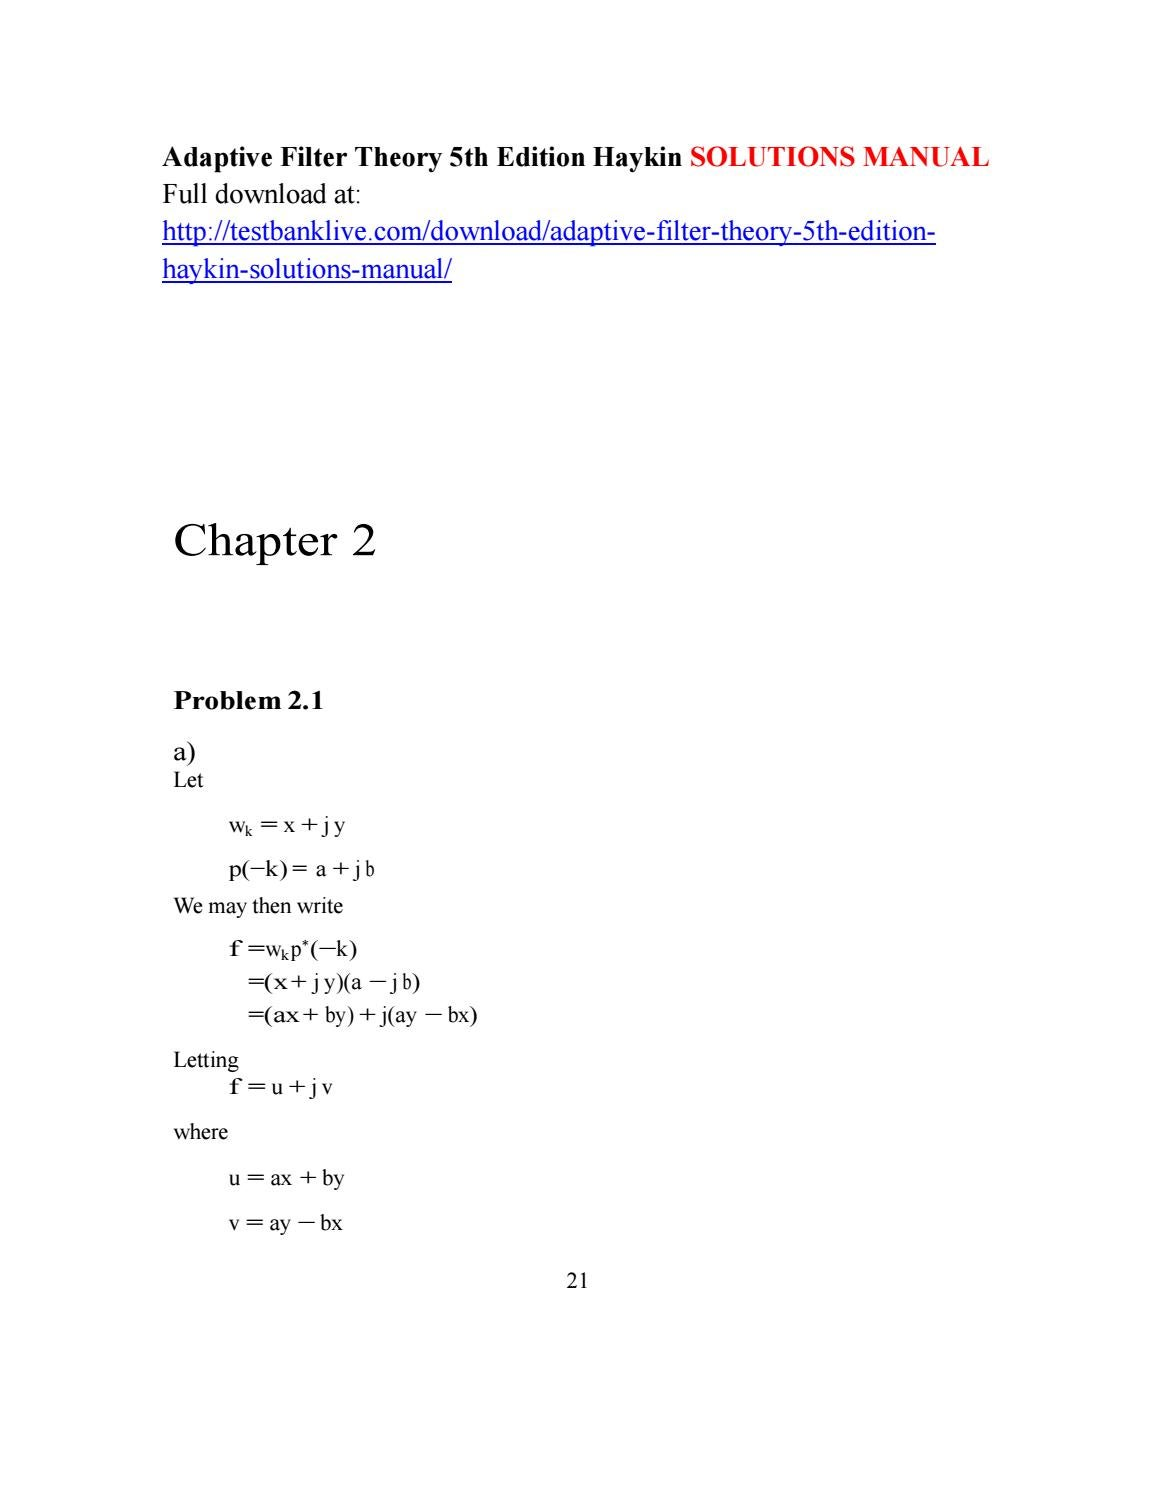 Adaptive Filter Theory 5th Edition Haykin Solutions Manual By Steelshot Issuu